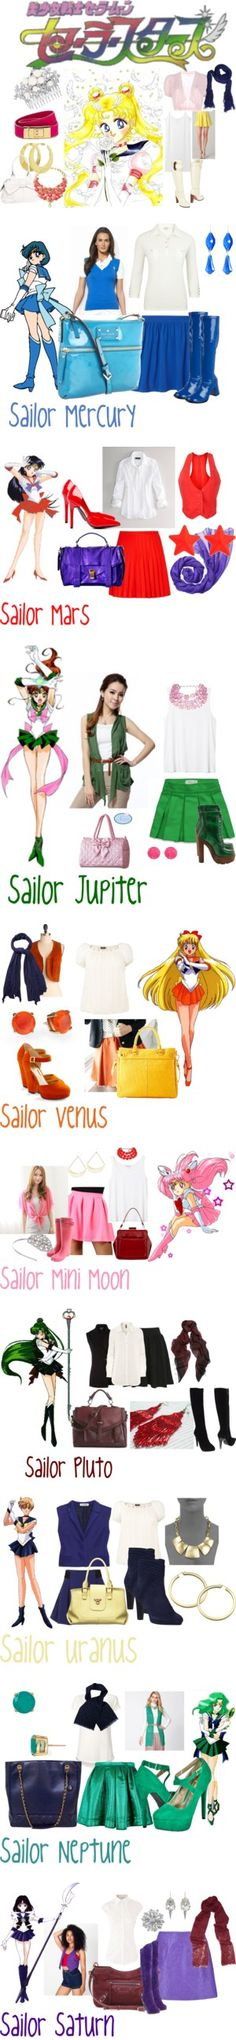 """""""Sailor Moon Sailor Scout Style"""" by lisagrace303 ❤ liked on Polyvore"""